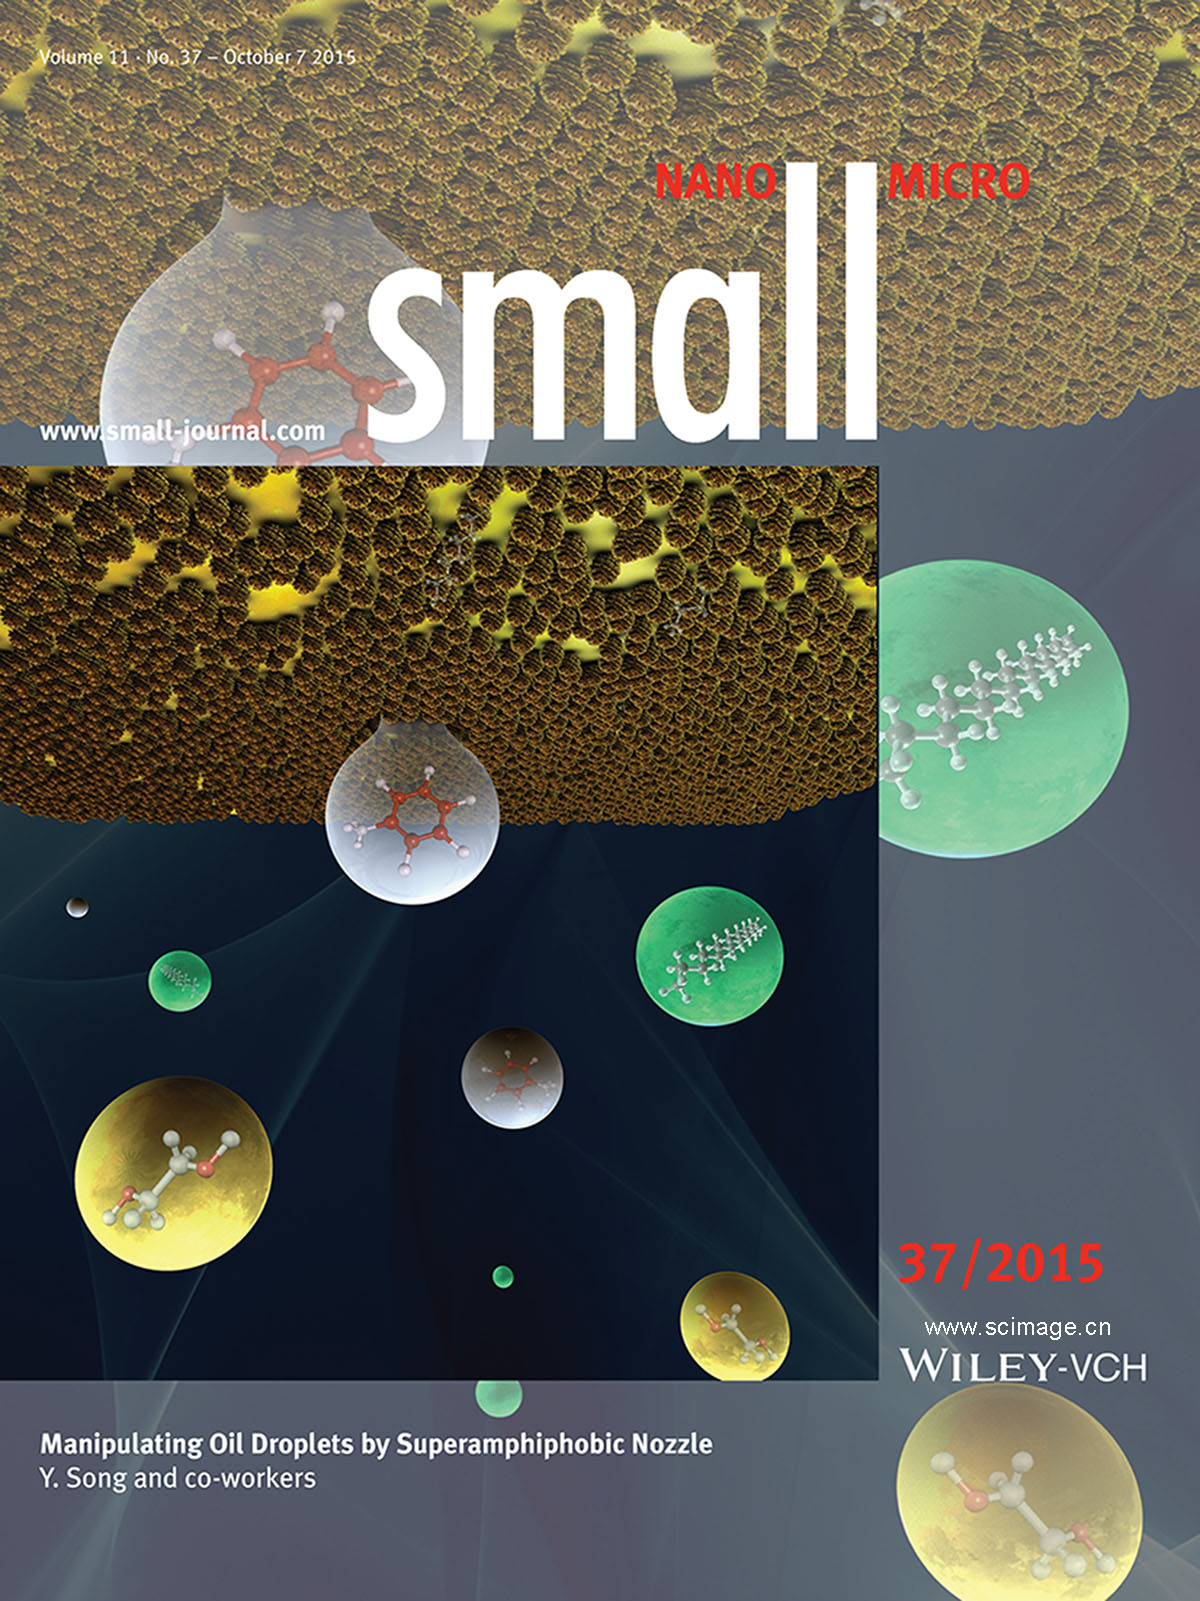 Oil Droplets: Manipulating Oil Droplets by Superamphiphobic Nozzle (Small 37/2015) (page 4988)